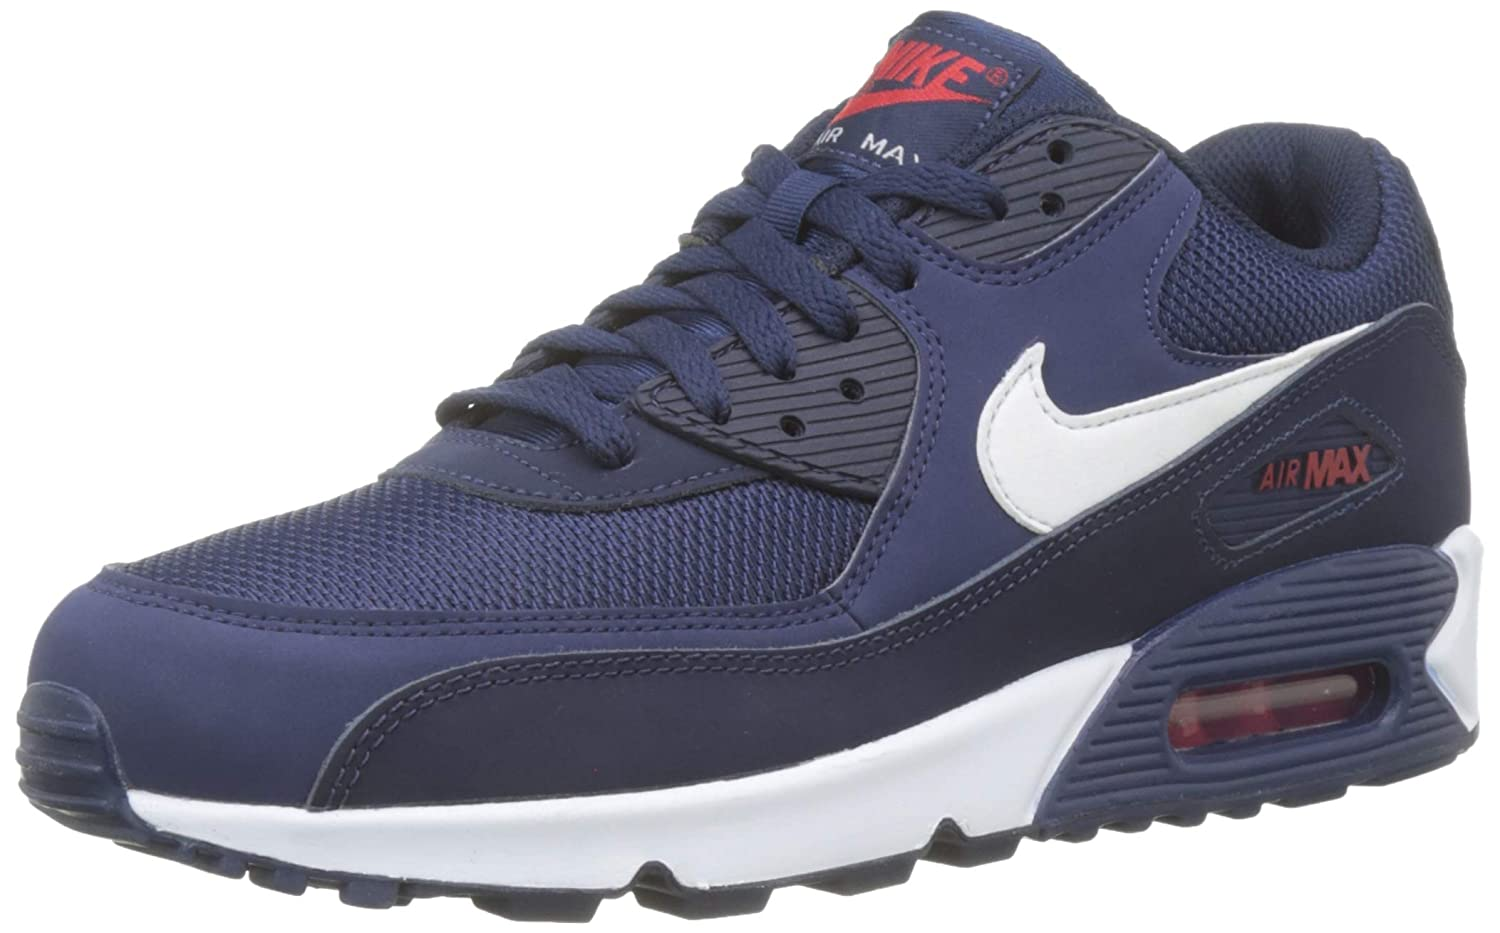 Nike Mens Air Max 90 Essential Running schoens Midnight NavyWhiteUniversity Red AJ1285 403 Size 13